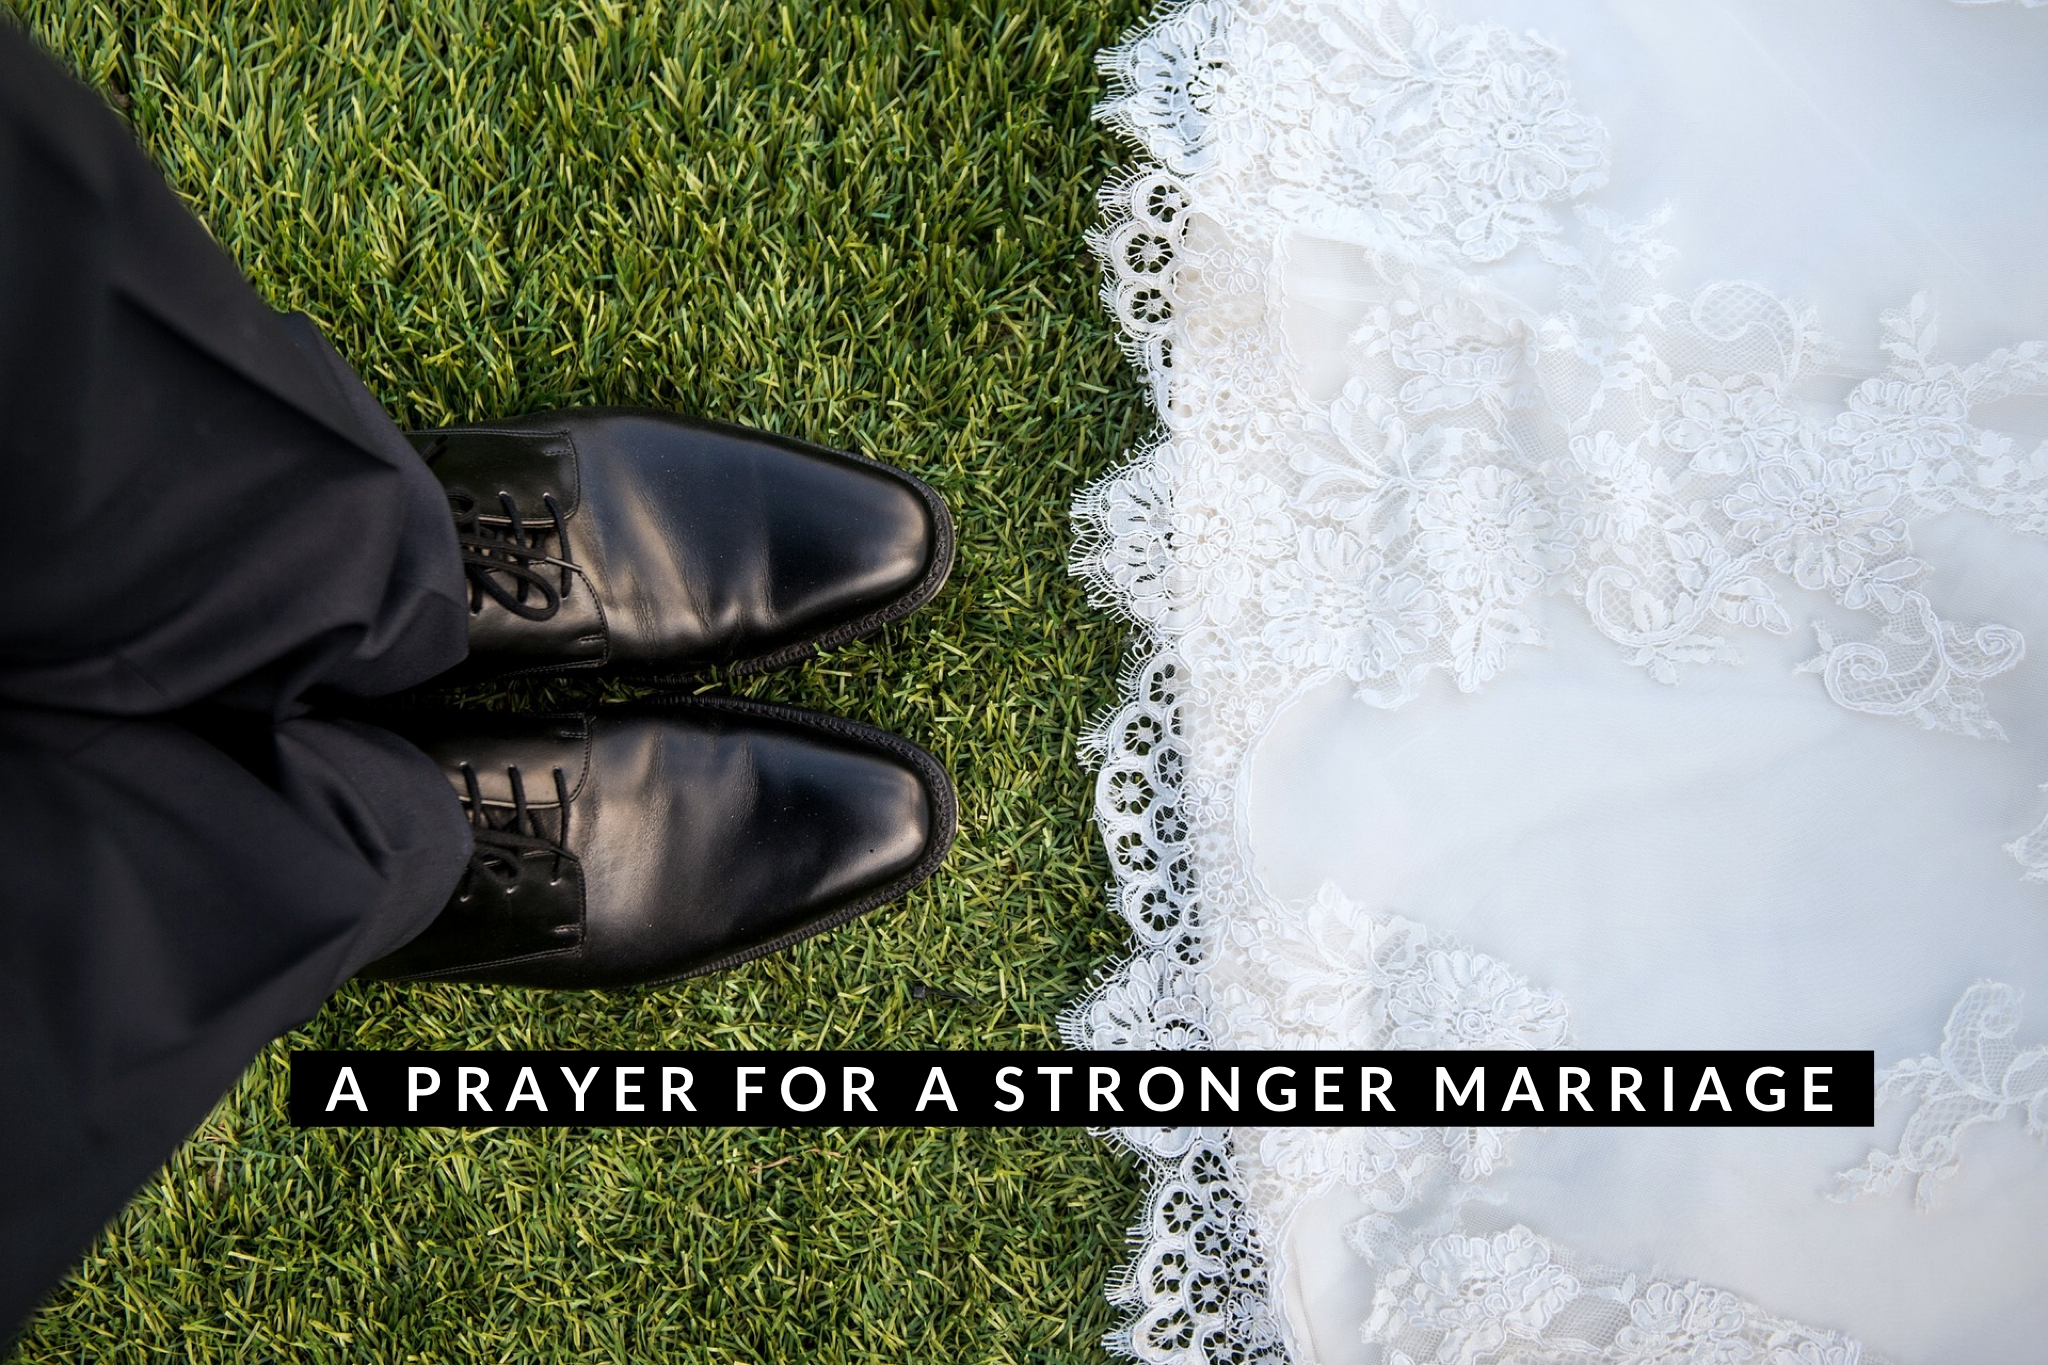 Family: A Prayer for a Stronger Marriage